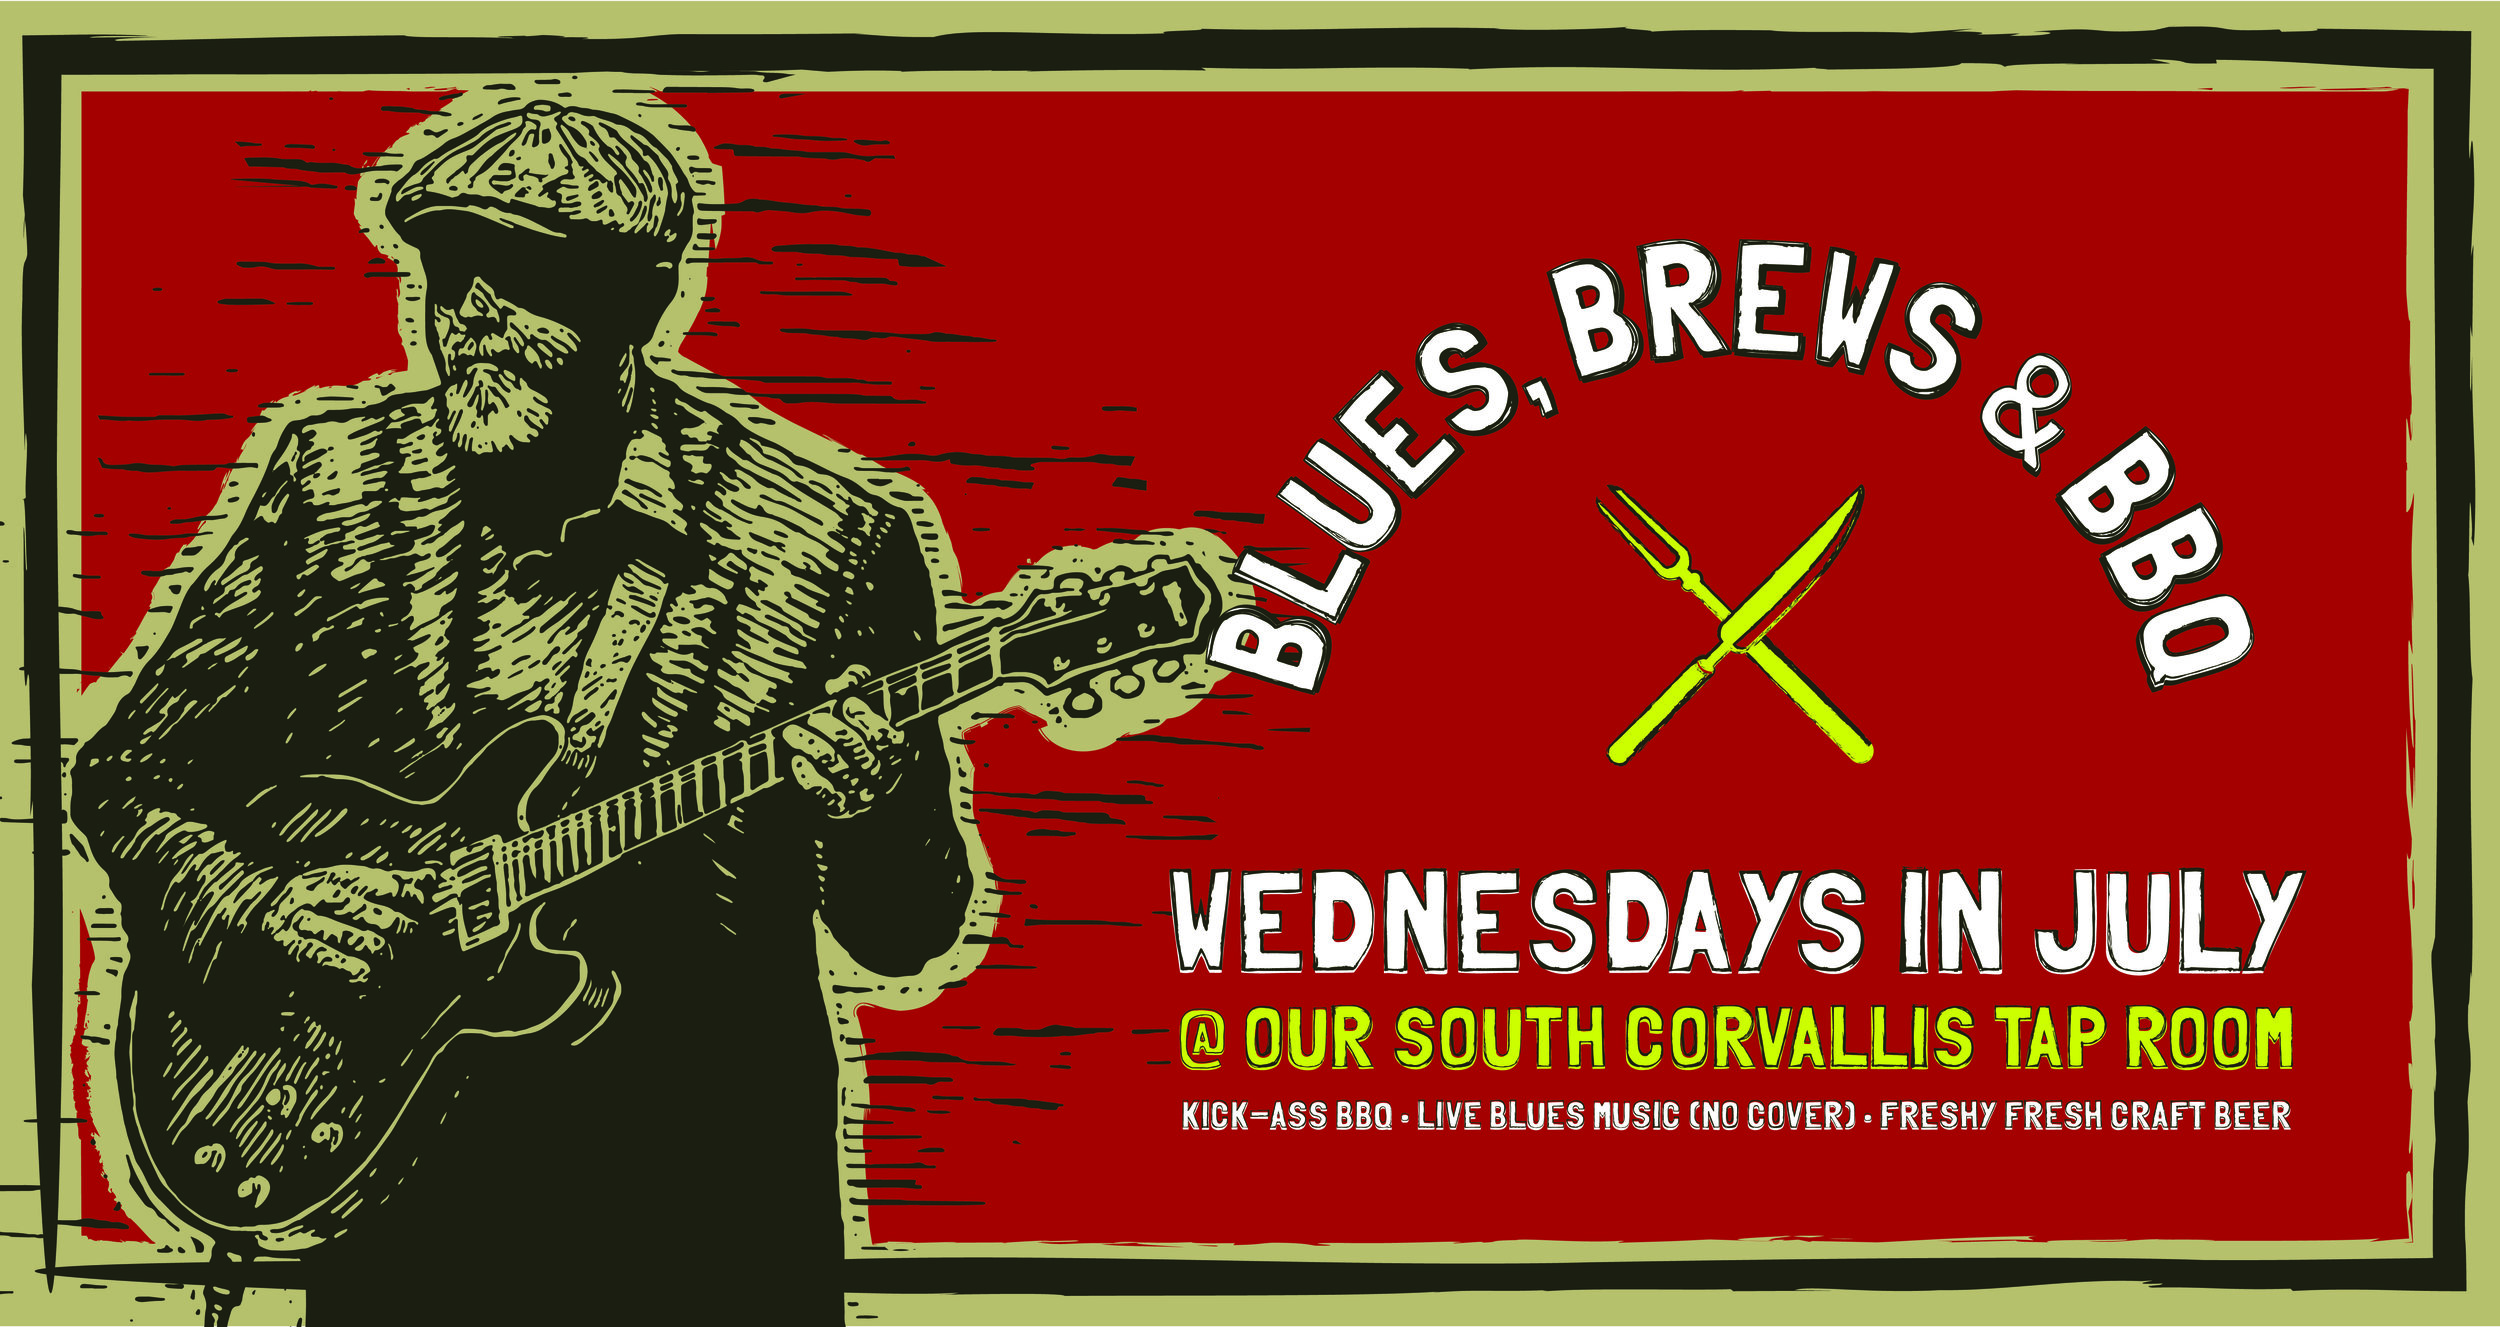 "Join us Wednesdays in July for ""Blues, Brews & BBQ"" at our Tap Room! Enjoy cover-free blues from local musicians, kick-ass BBQ specials, and freshy fresh beer brewed feet from your seat. This Wednesday we welcome String Theory, and feature a special menu of Santa Maria Tri-Tip and Arugula Salad with Piquinto Beans and Watermelon."